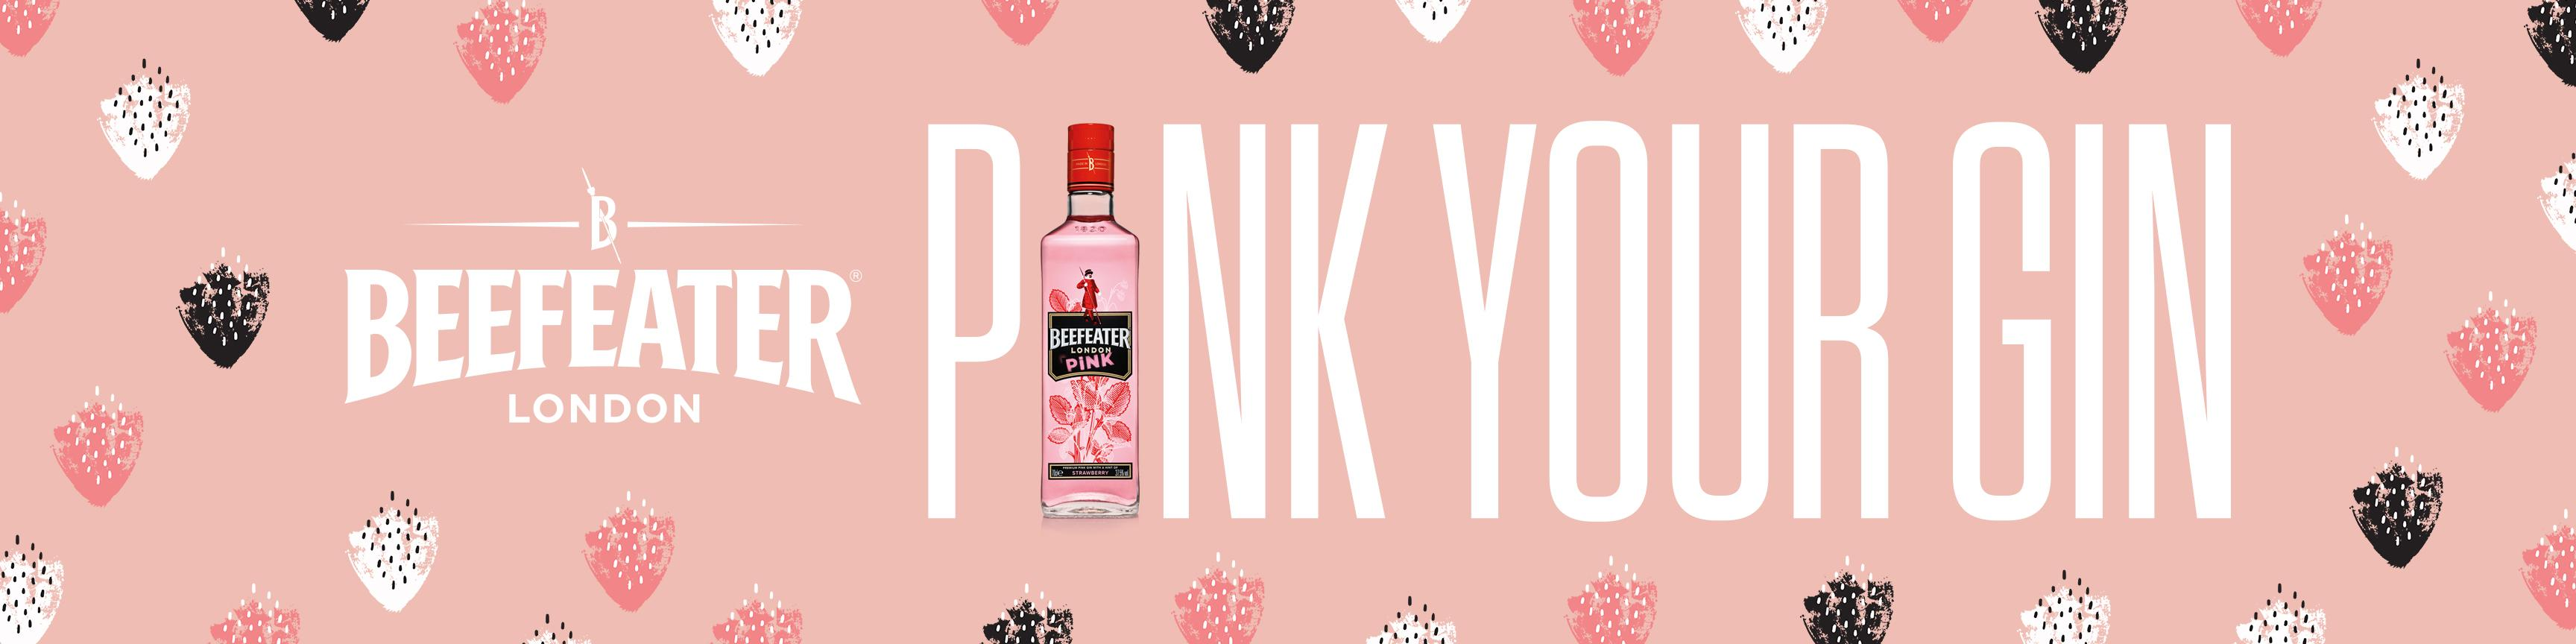 Beefeater Outdoor Ad - Pink